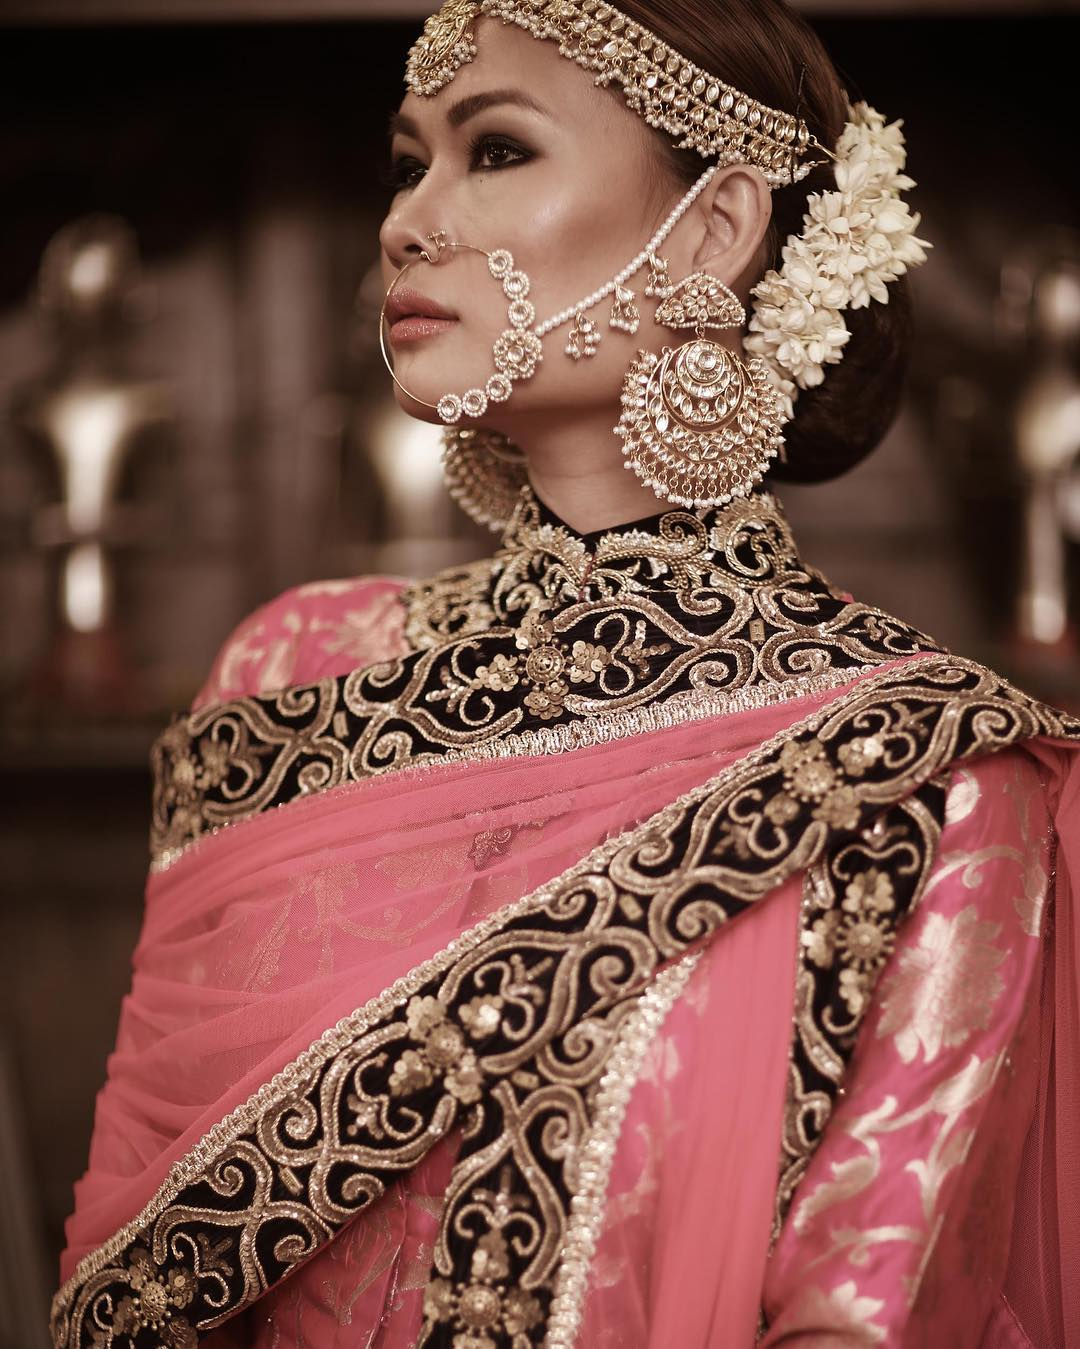 About nath nose ring mukku pudaka on pinterest jewellery gold nose - Bridal Nose Ring Ideas Stunning Bridal Nath Designs That Indian